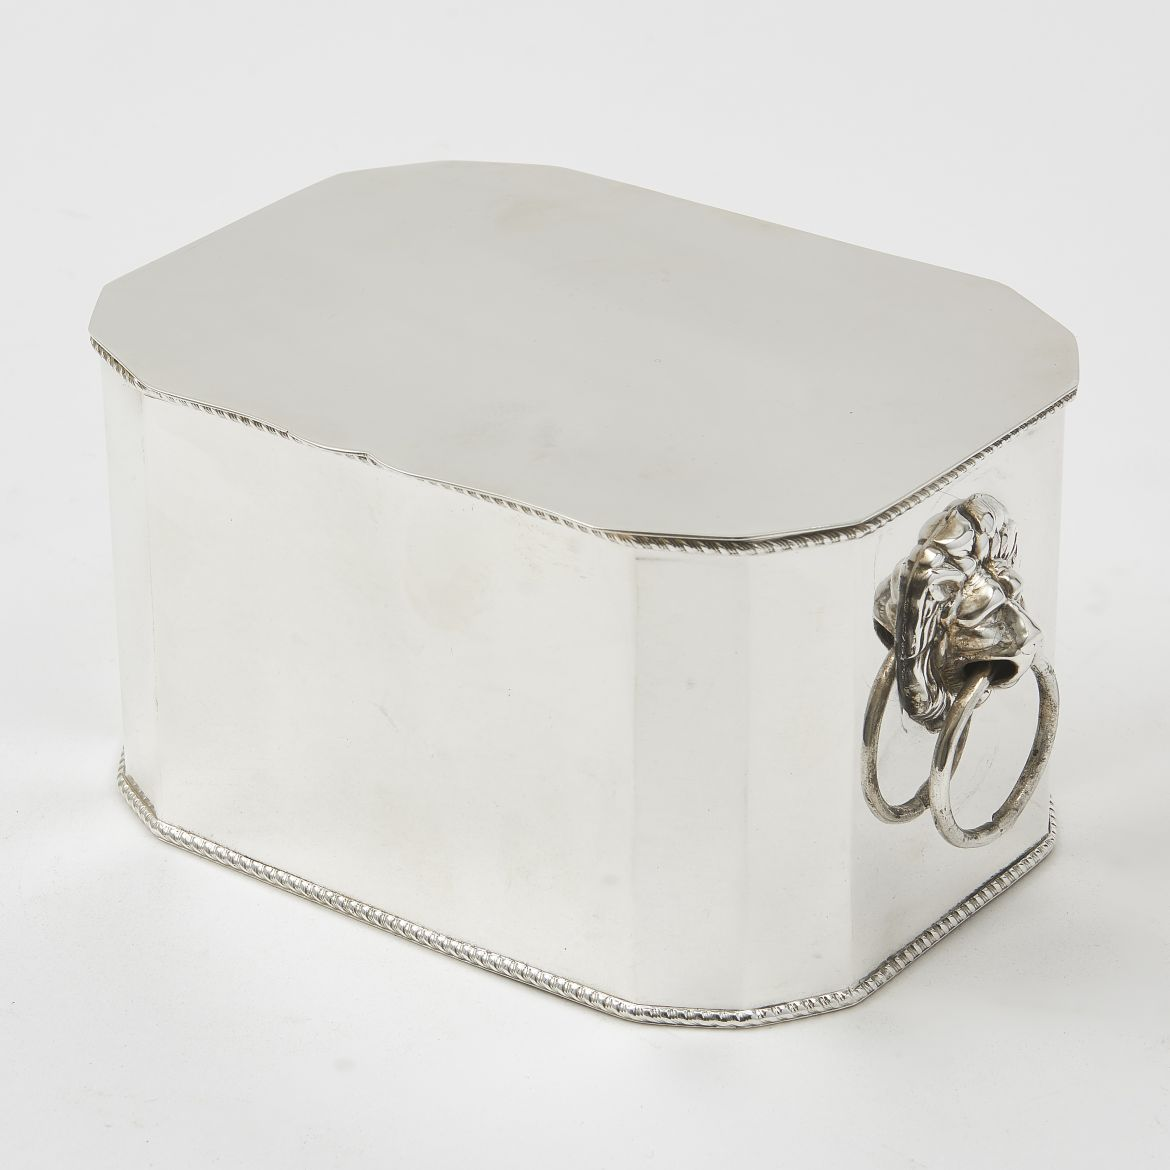 Edwardian Silver Plate Box With Canted Corners And Lion Handles